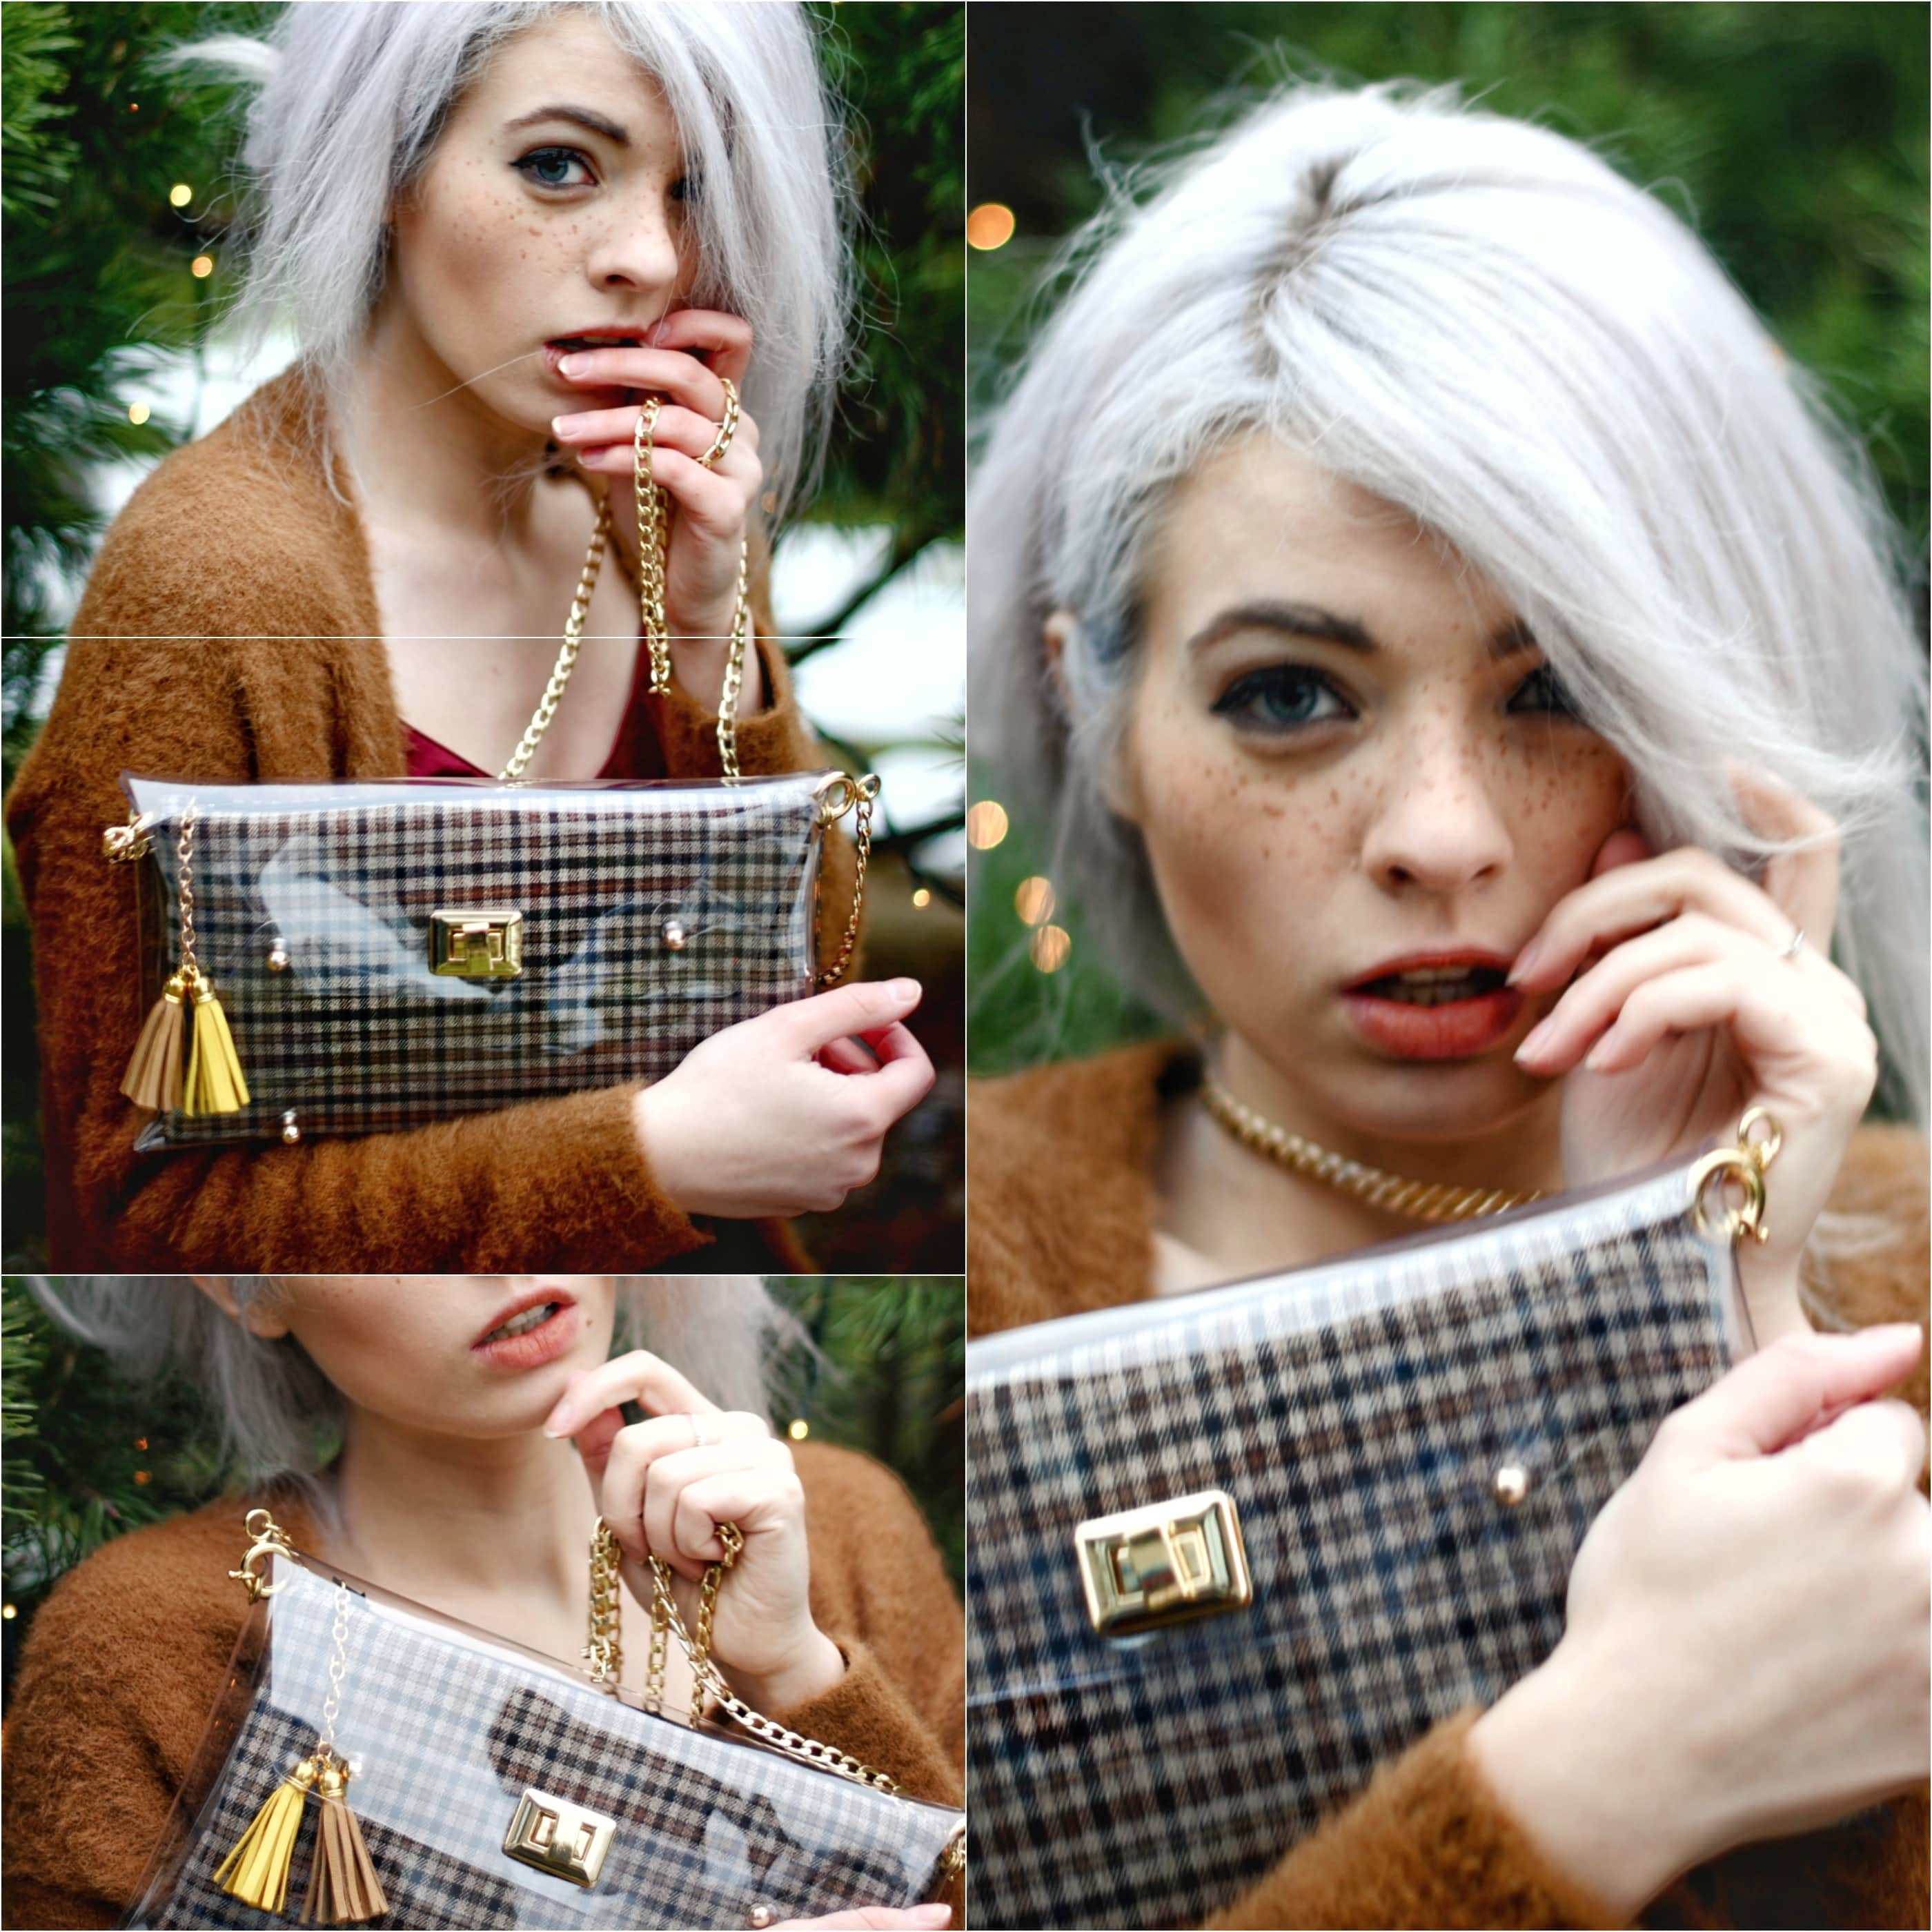 Tartan clutch Bag - Tartan Handbags - Irish clutch bags by Mardere